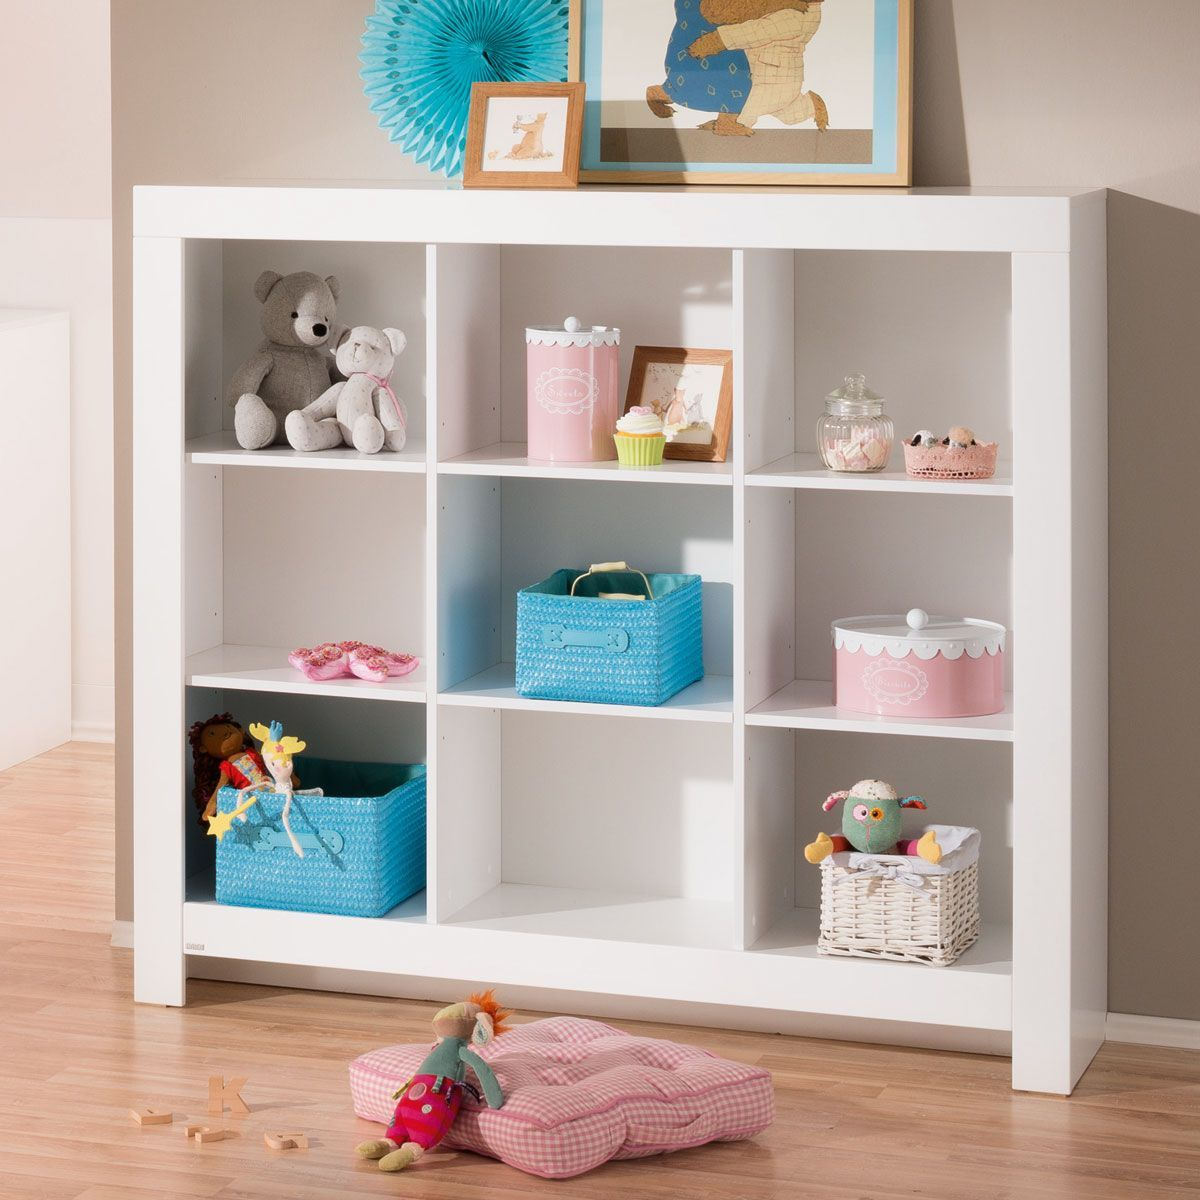 15 Lovely Fotos Von Standregal Kinderzimmer Shelves Wall